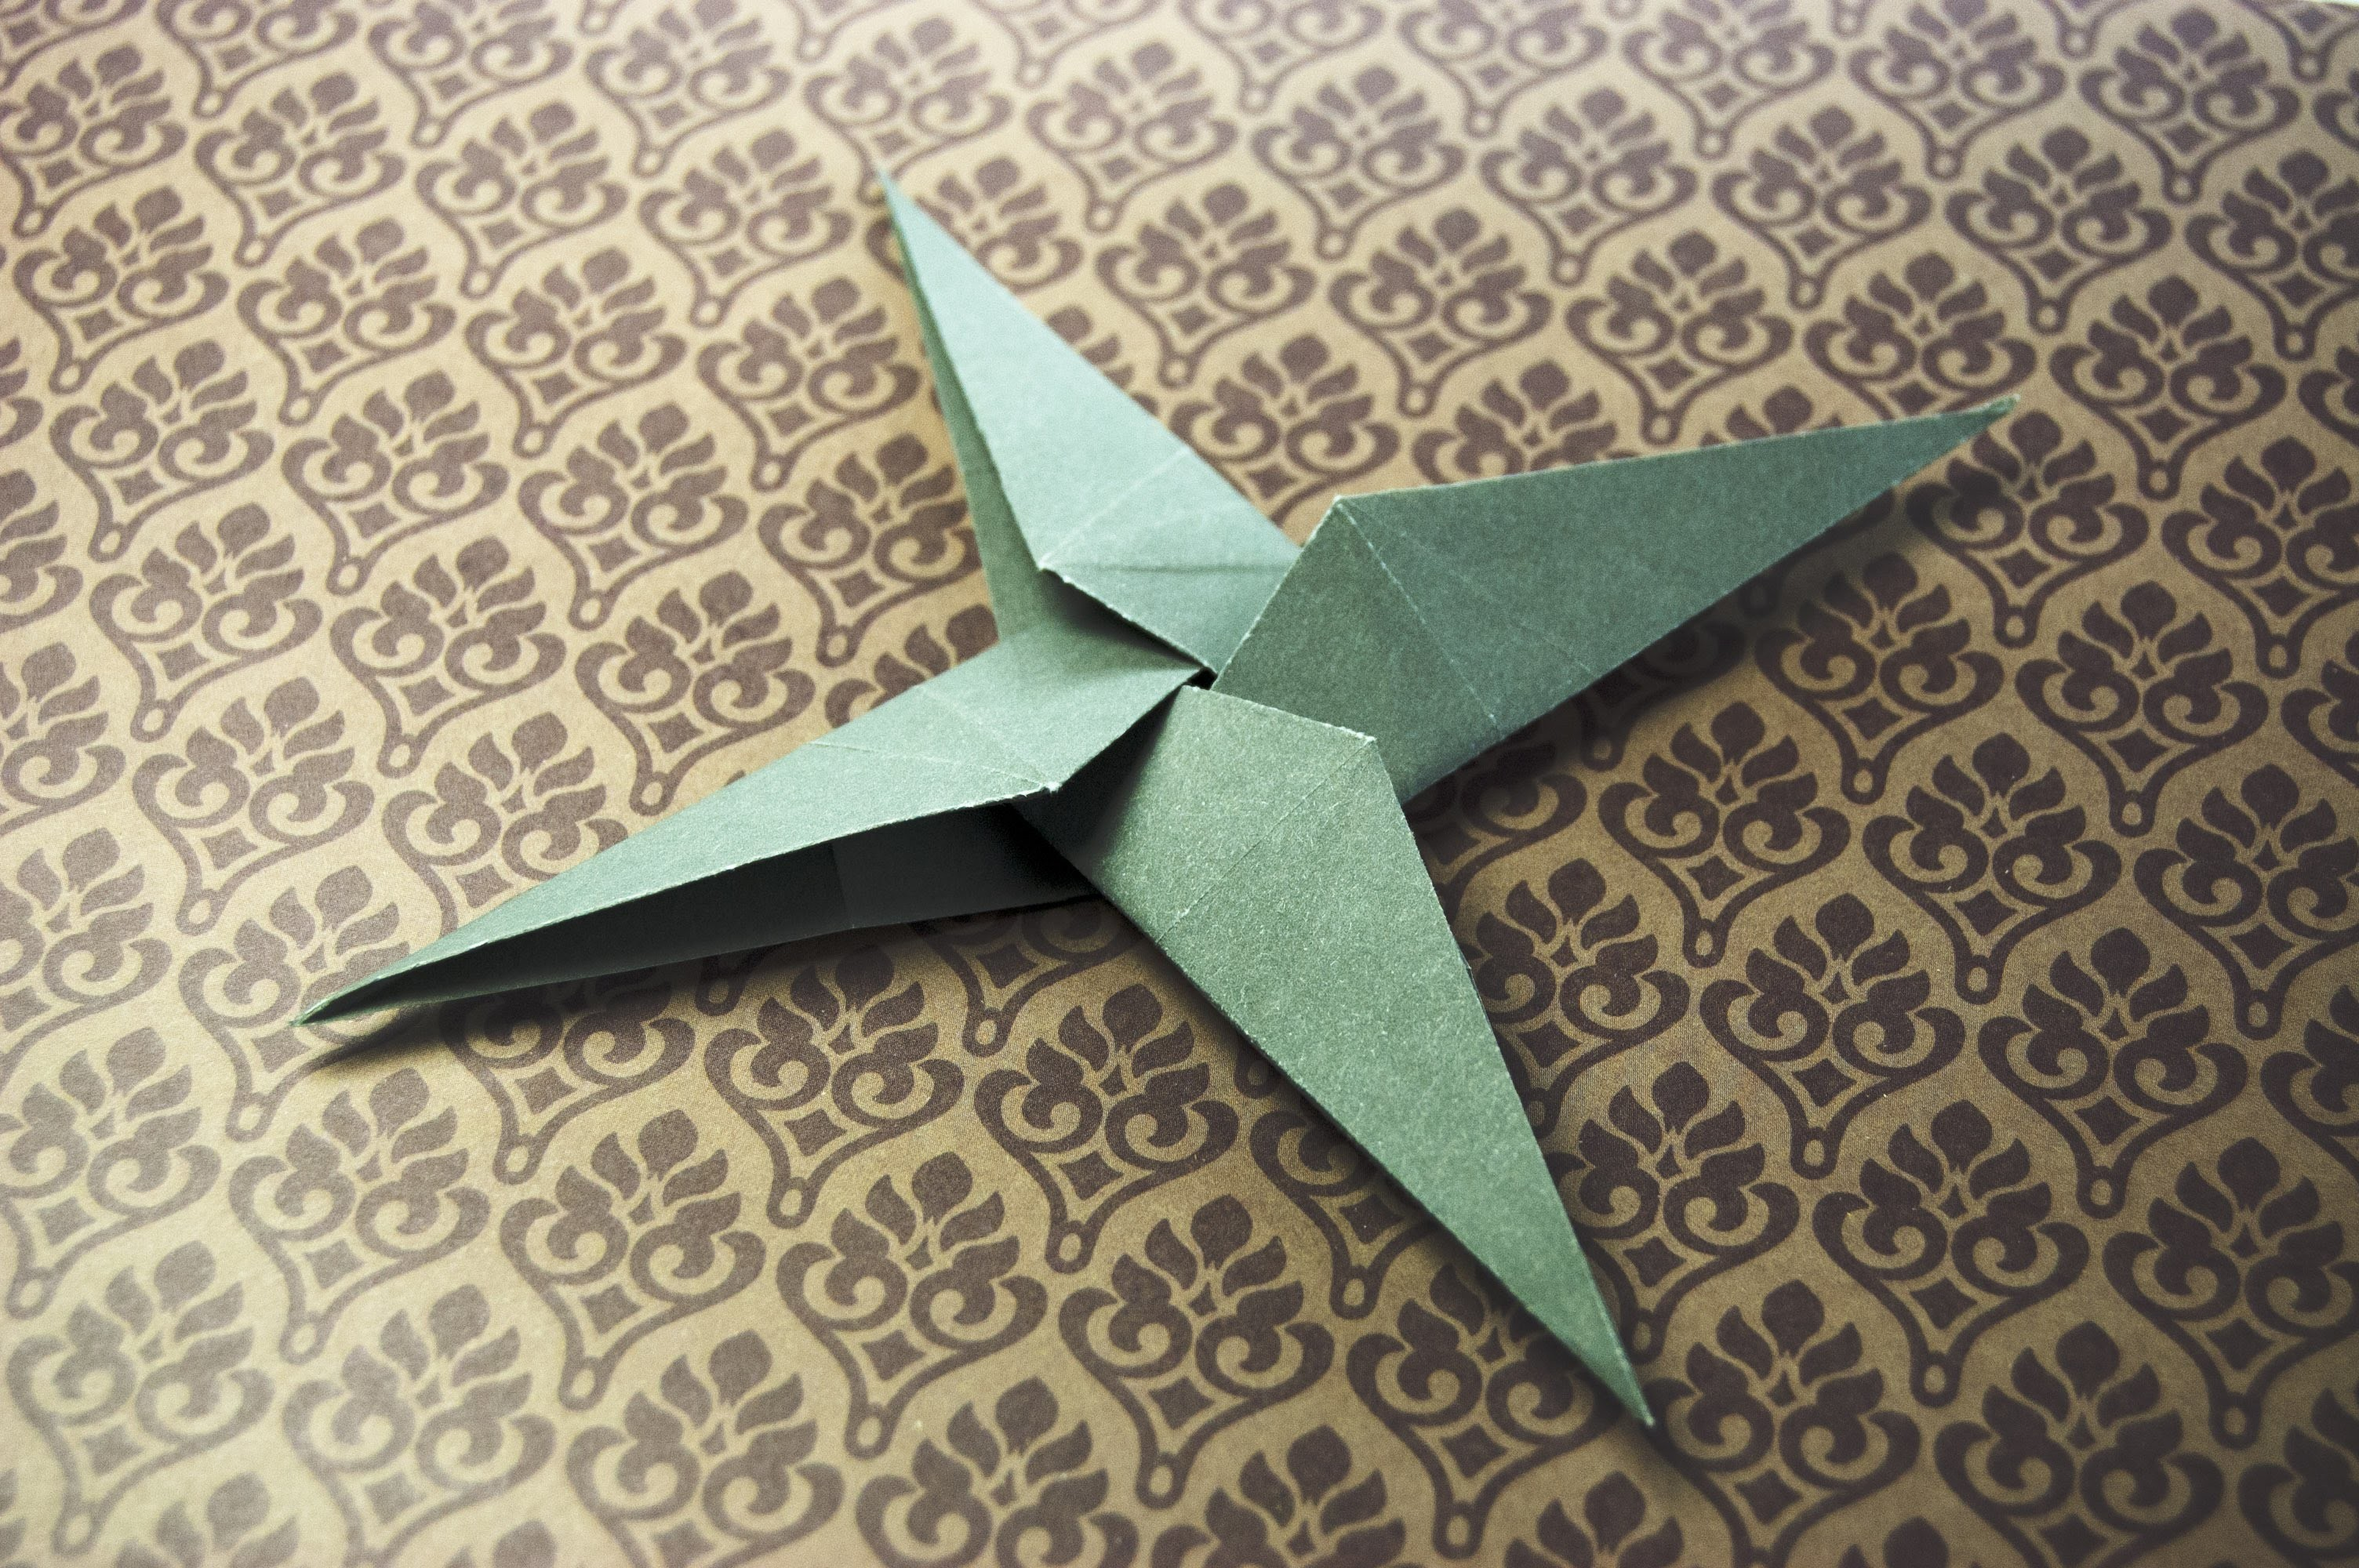 Square, How To Make A 16-Pointed Ninja Star Out Of Paper ... - photo#25